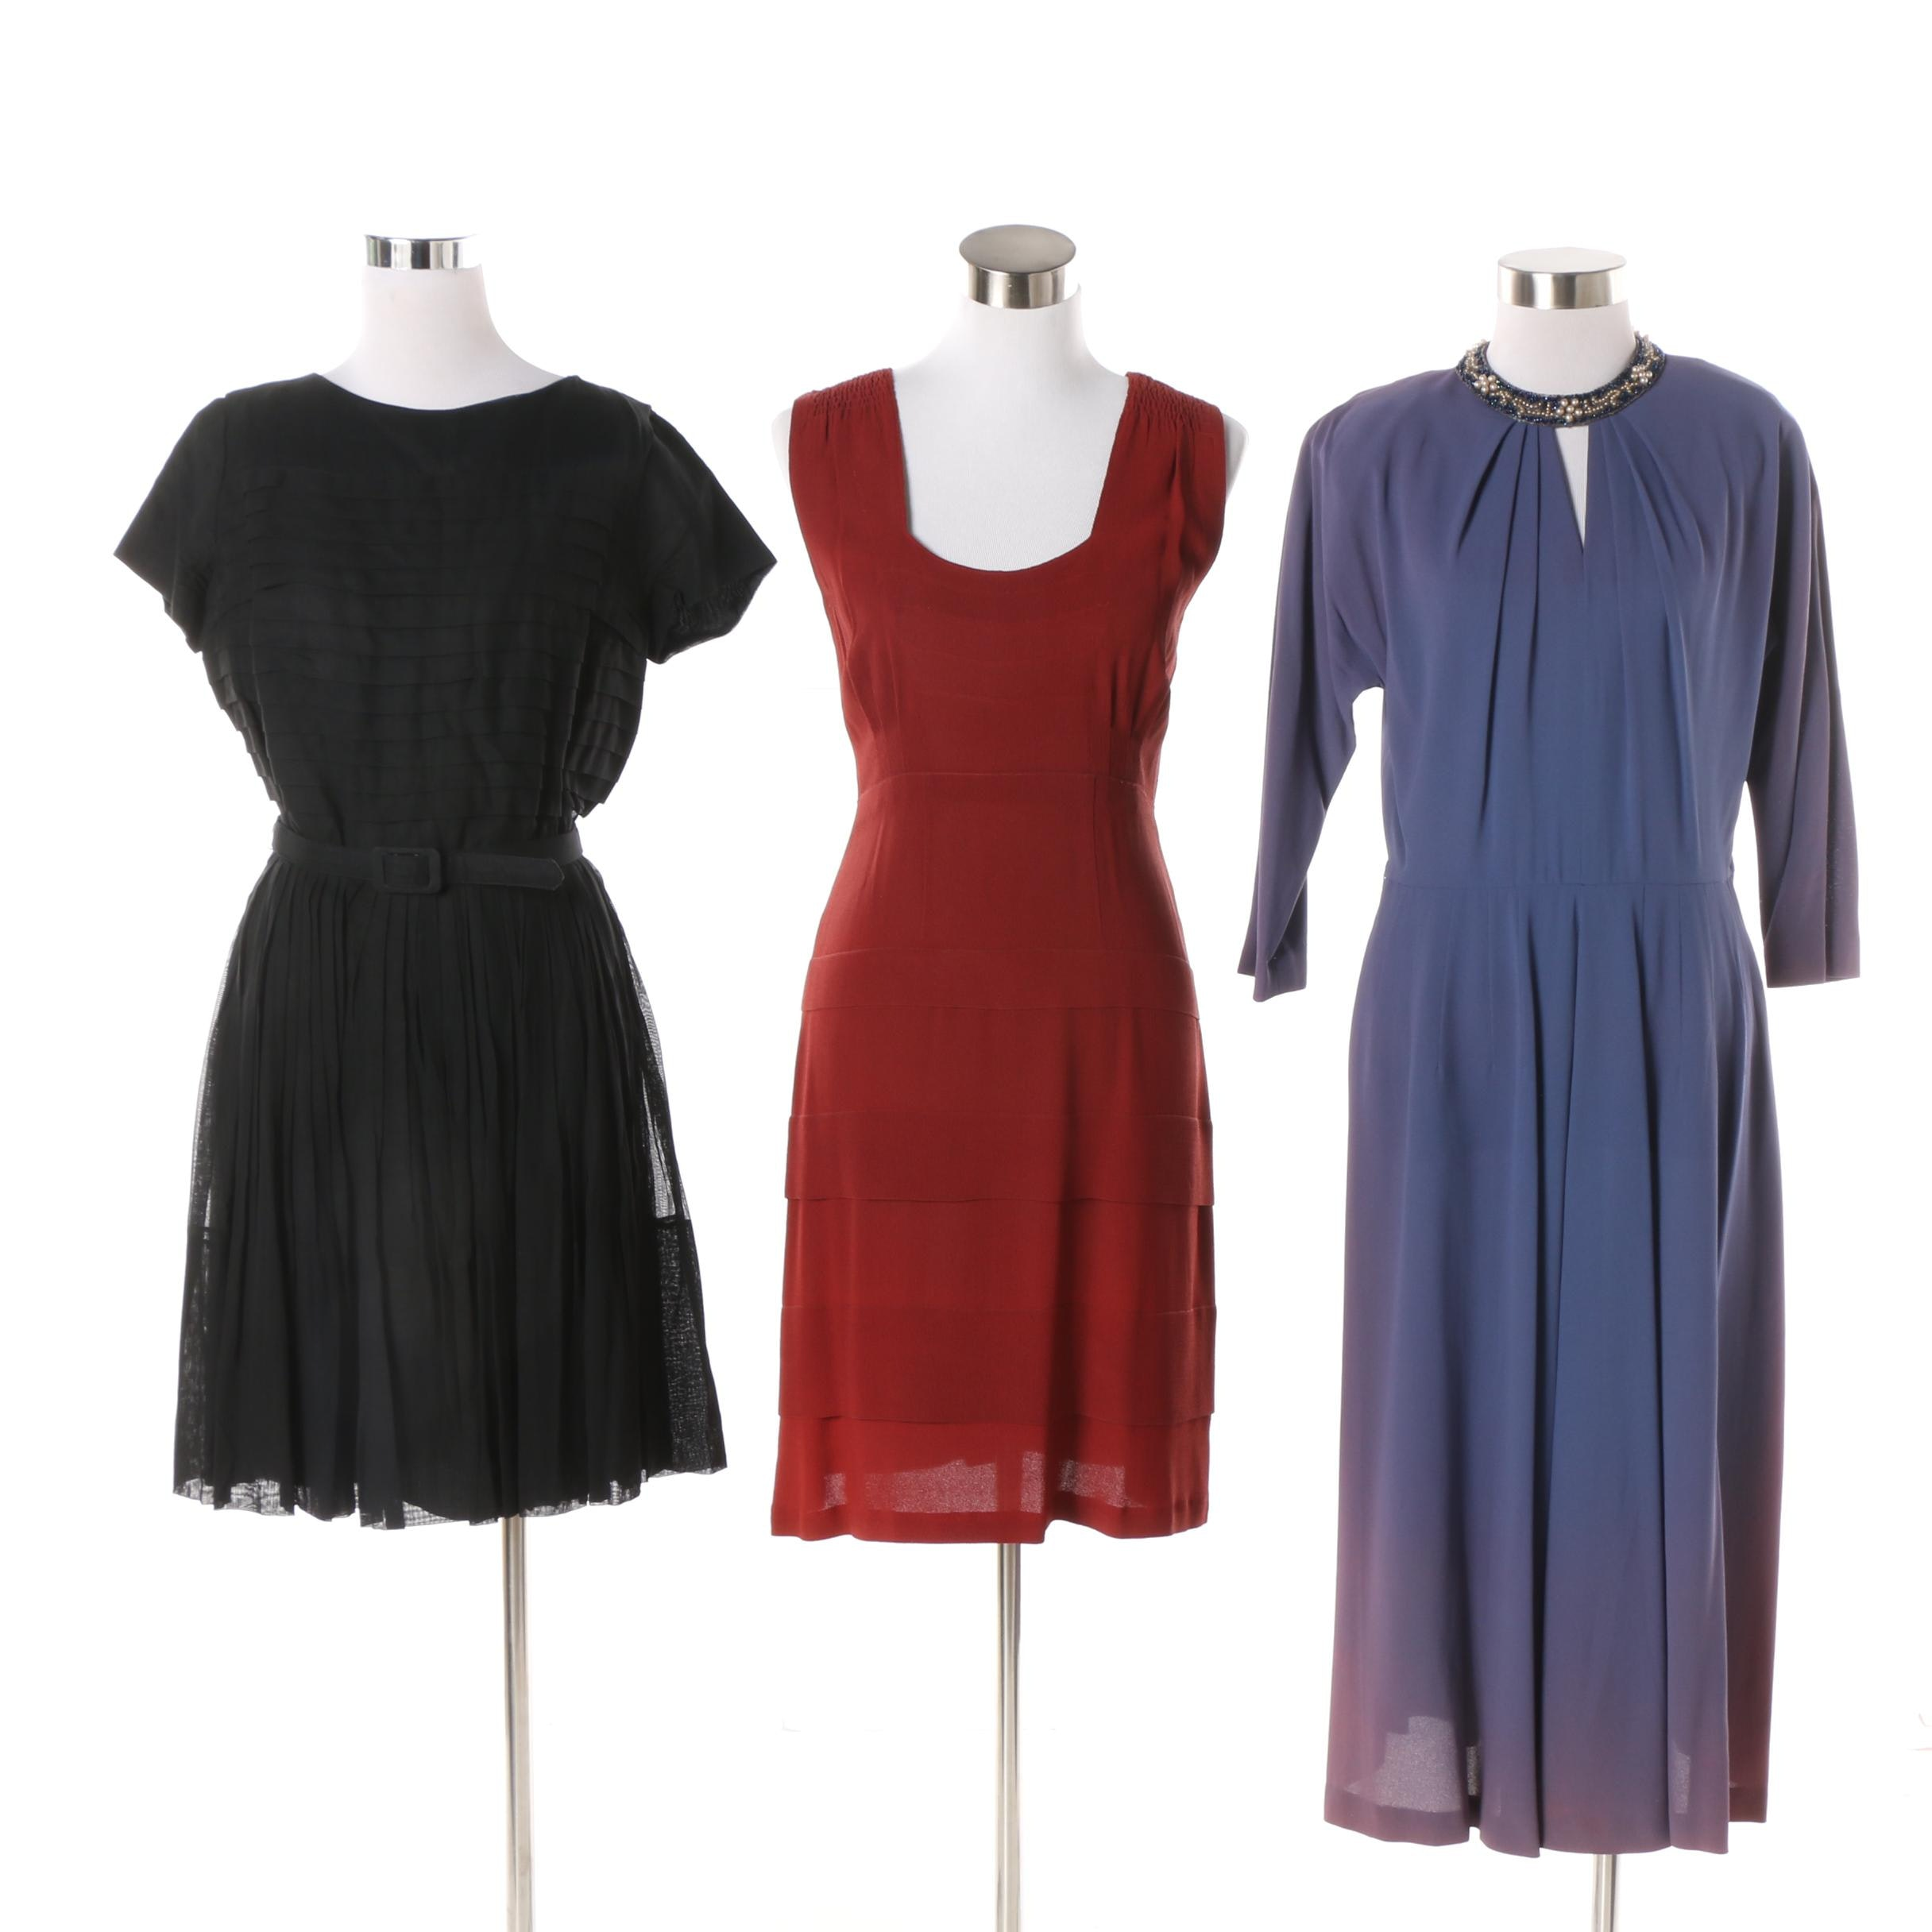 Women's Vintage Dresses Including Nelson-Caine New York and Henry-Lee